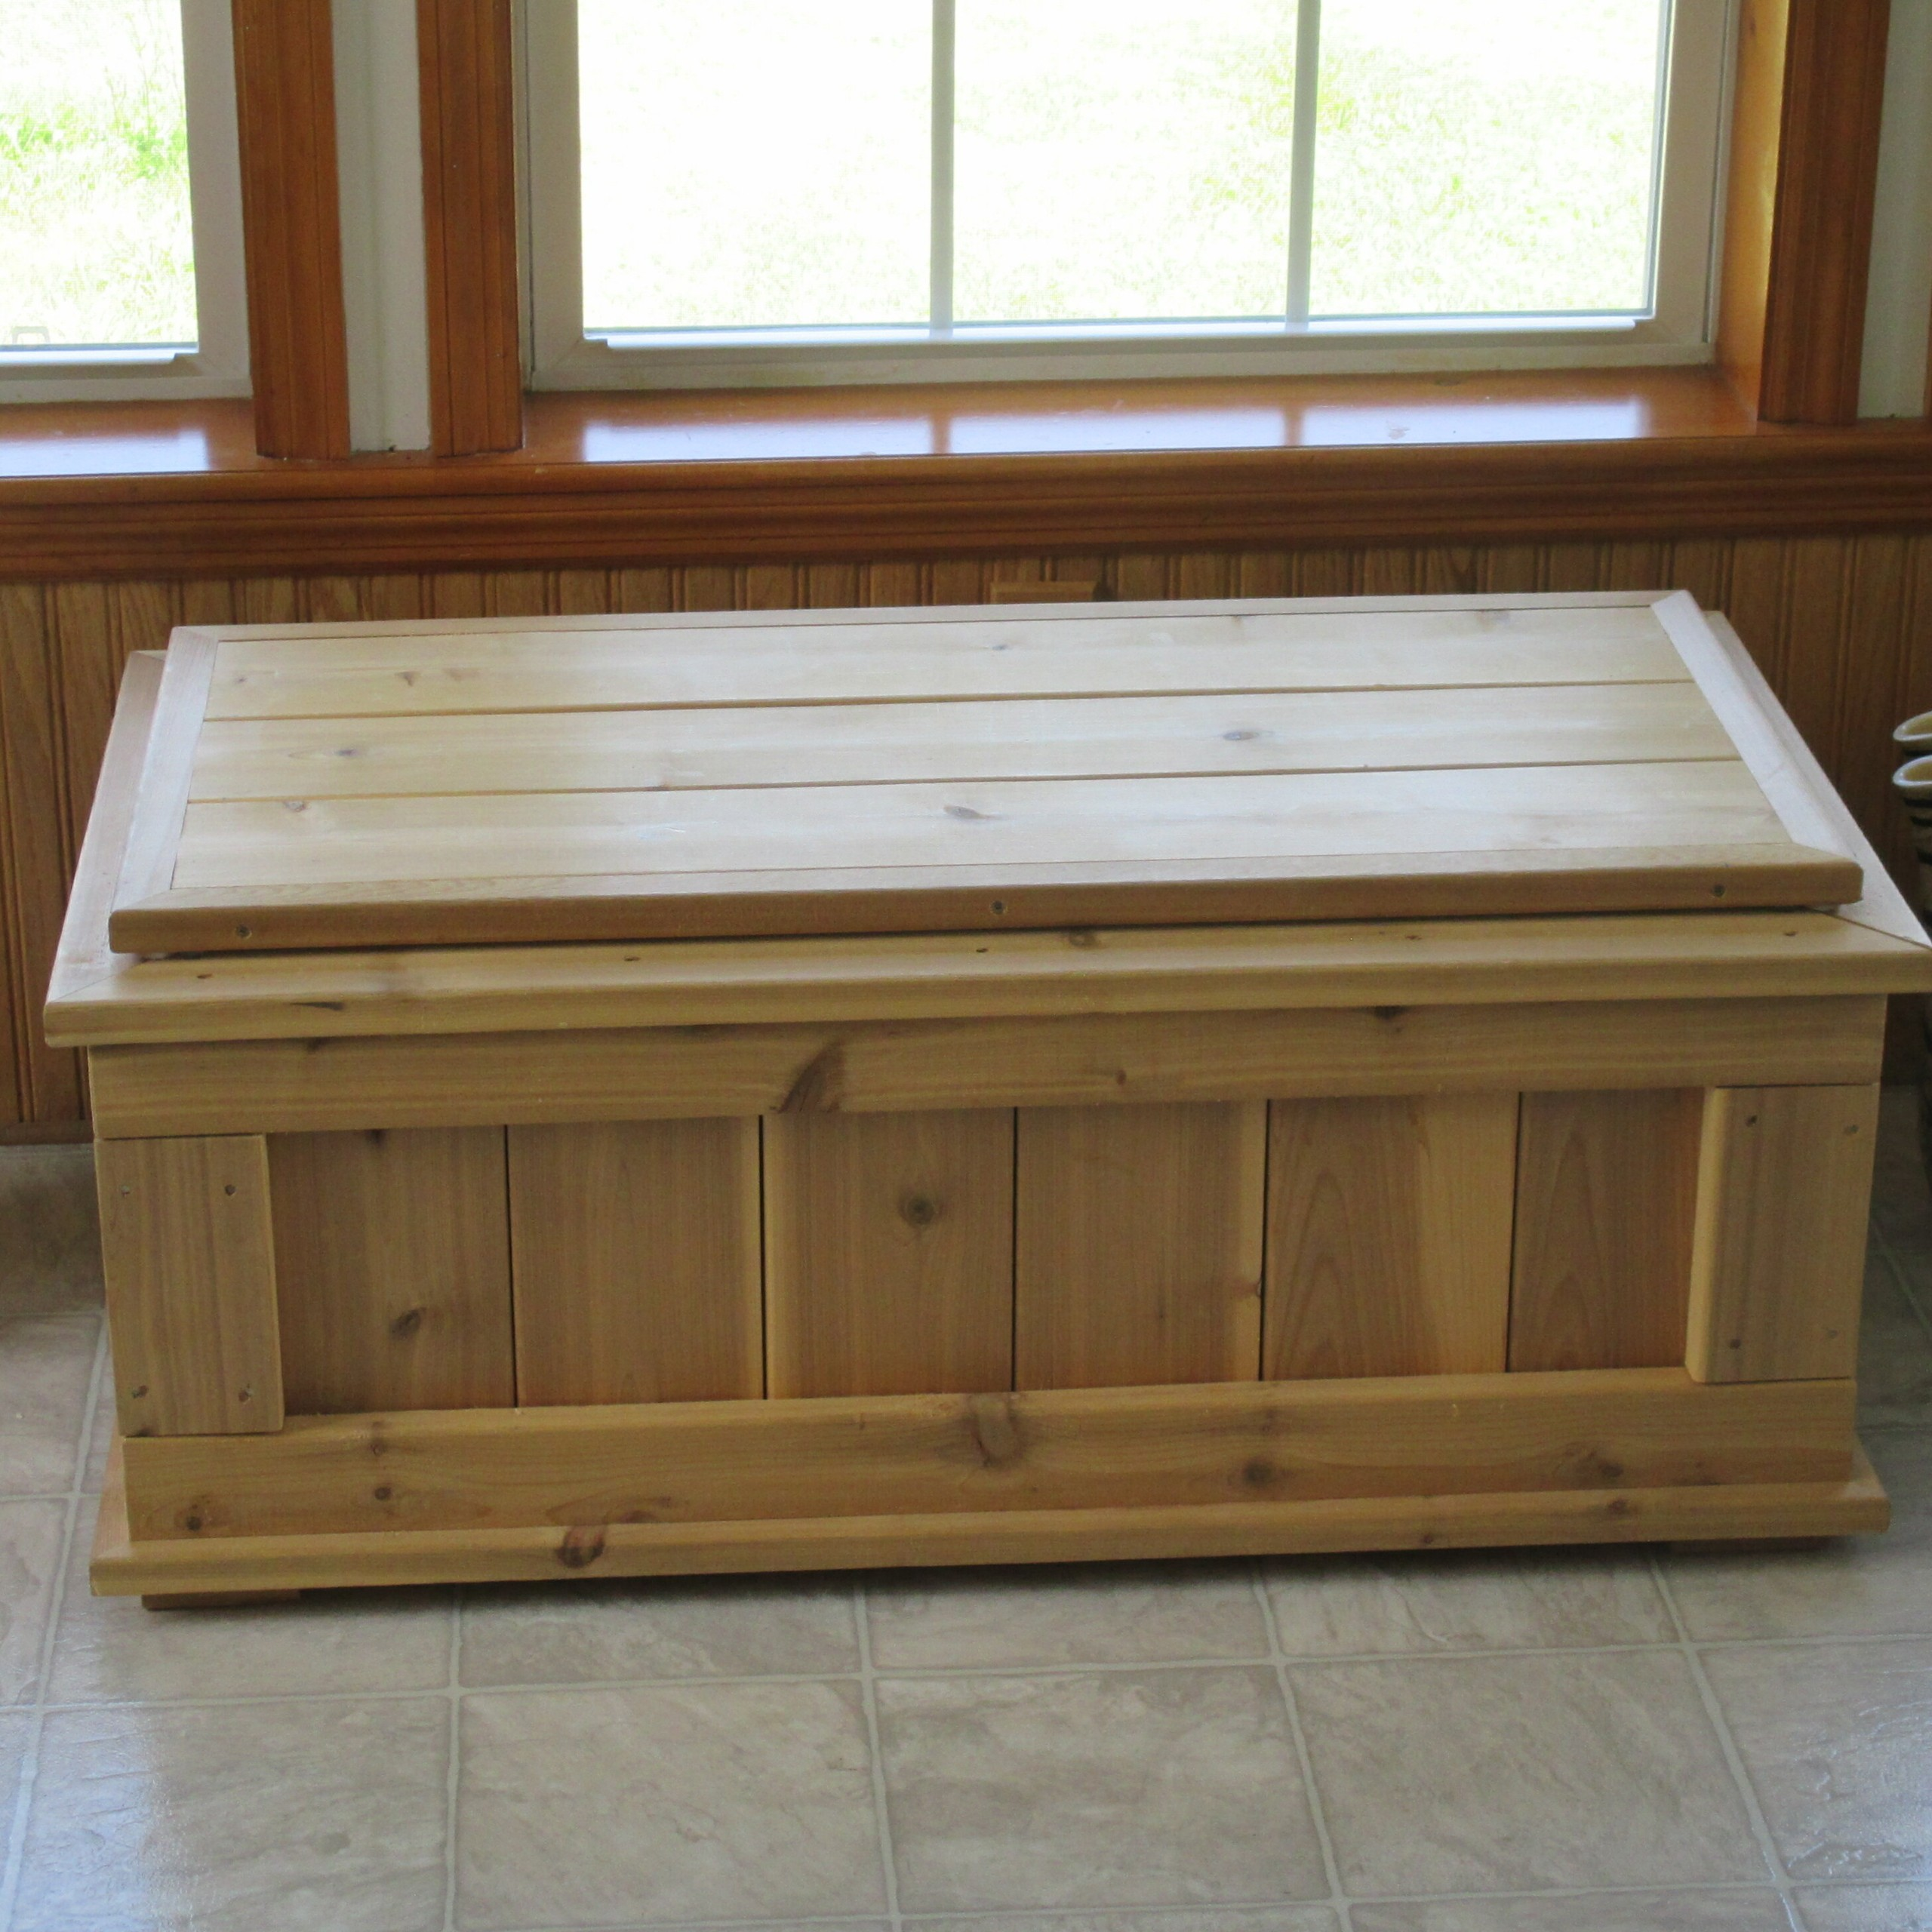 Large Storage Bench For Outdoor And Indoor Space